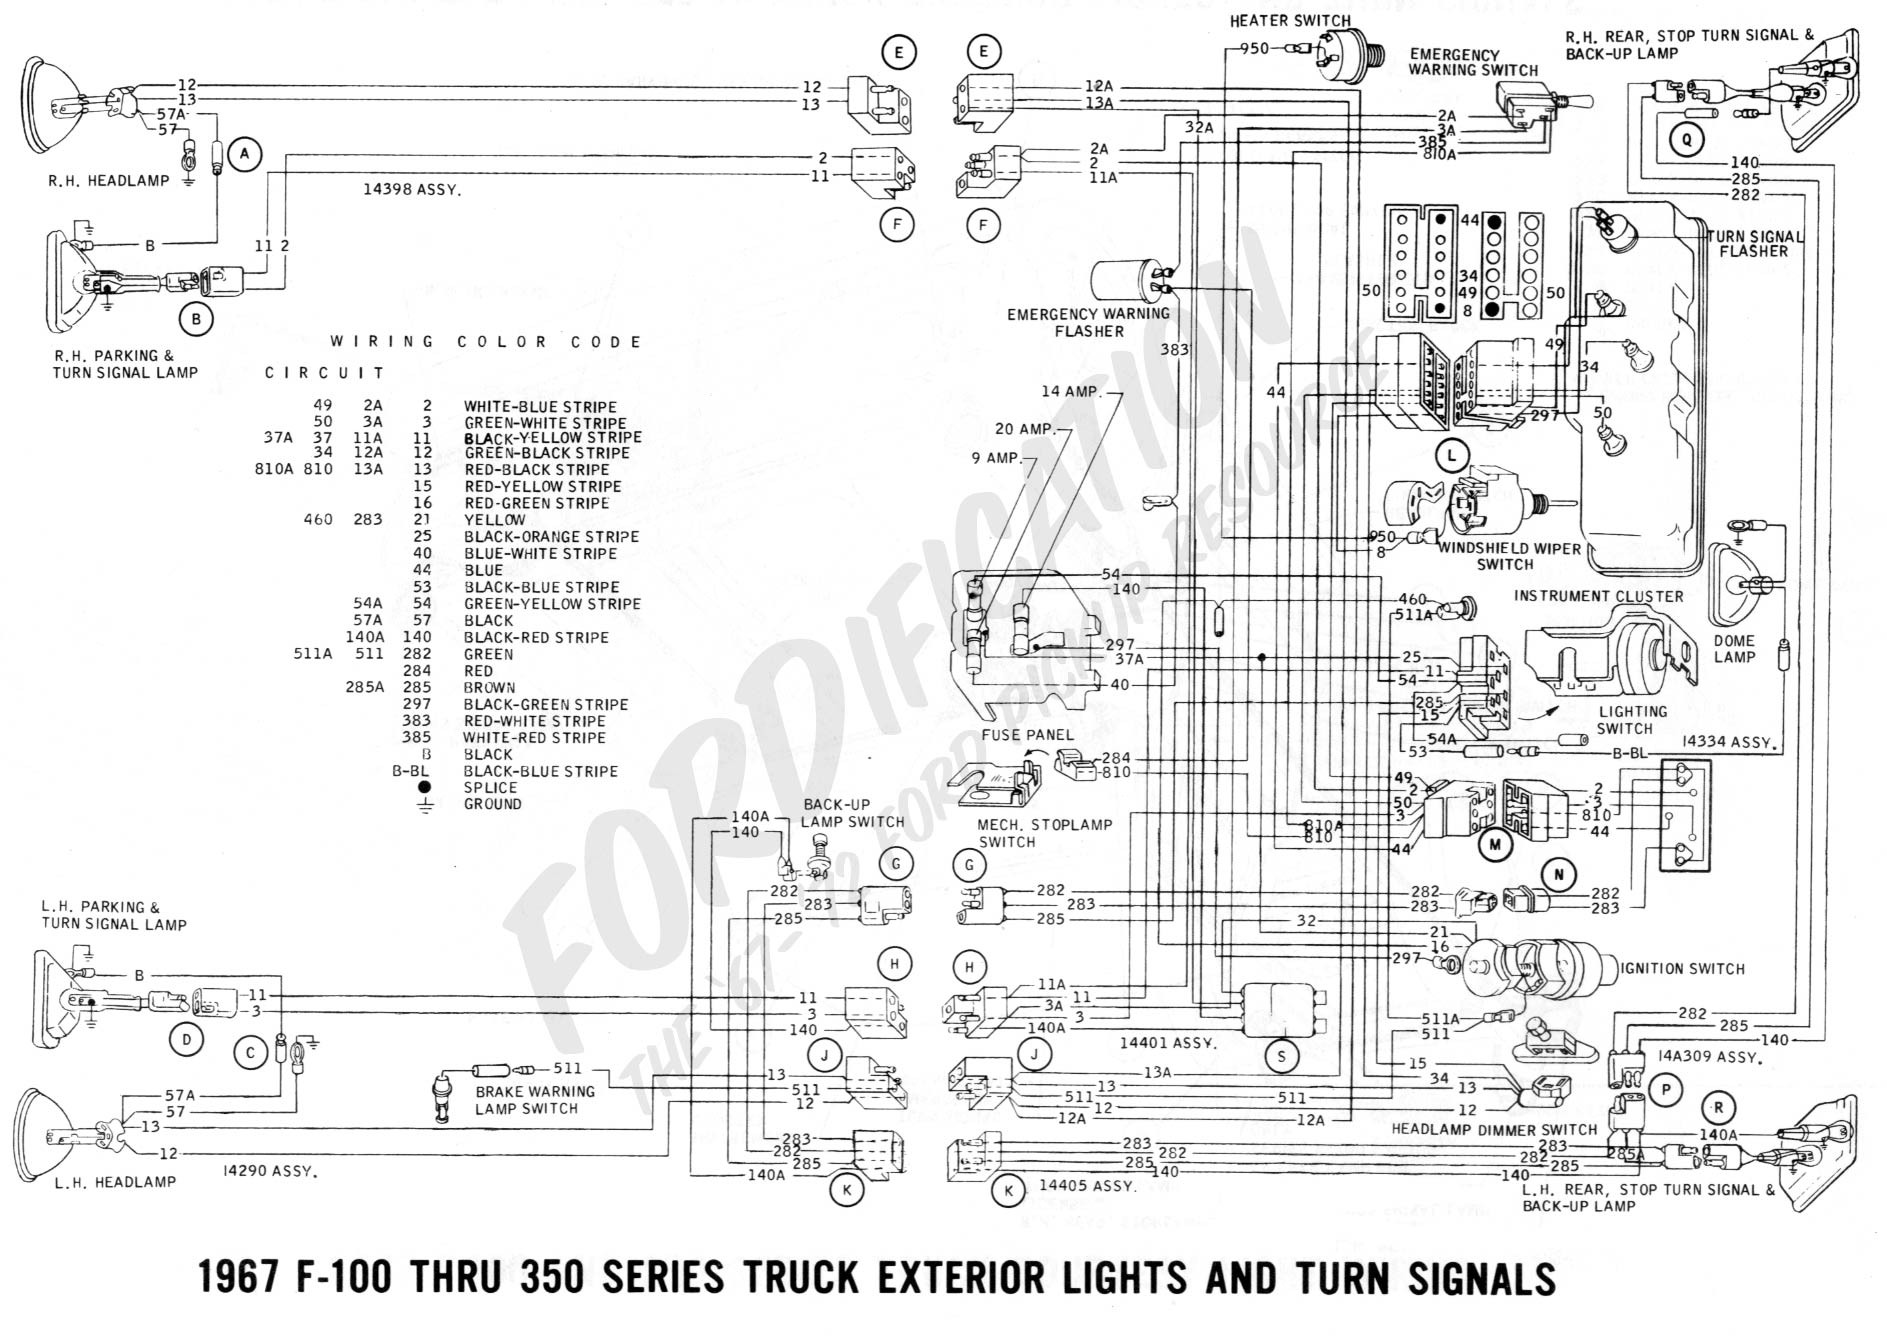 1989 Ford Thunderbird Wiring Diagram - Wiring Diagram Data Today  Ford F Wiring Diagram on 1977 ford f150 firing order, 1977 ford f150 frame, 1977 ford f150 power steering, 1978 ford truck wiring diagram, 1977 ford maverick wiring diagram, 1977 ford ltd wiring diagram, 1979 ford f-150 wiring diagram, 1977 ford f150 cover, 1977 ford f150 neutral safety switch, 1977 ford f150 carburetor, 1977 ford f-250 wiring diagram, 1977 ford f150 radiator, 1977 ford f150 solenoid, 1977 ford f150 starter relay location, 1977 ford f150 engine swap, 1977 ford f150 owners manual, 1977 ford pinto wiring diagram, 1977 ford econoline wiring diagram, 84 ford f 150 wiring diagram, ford f-150 fuse panel diagram,